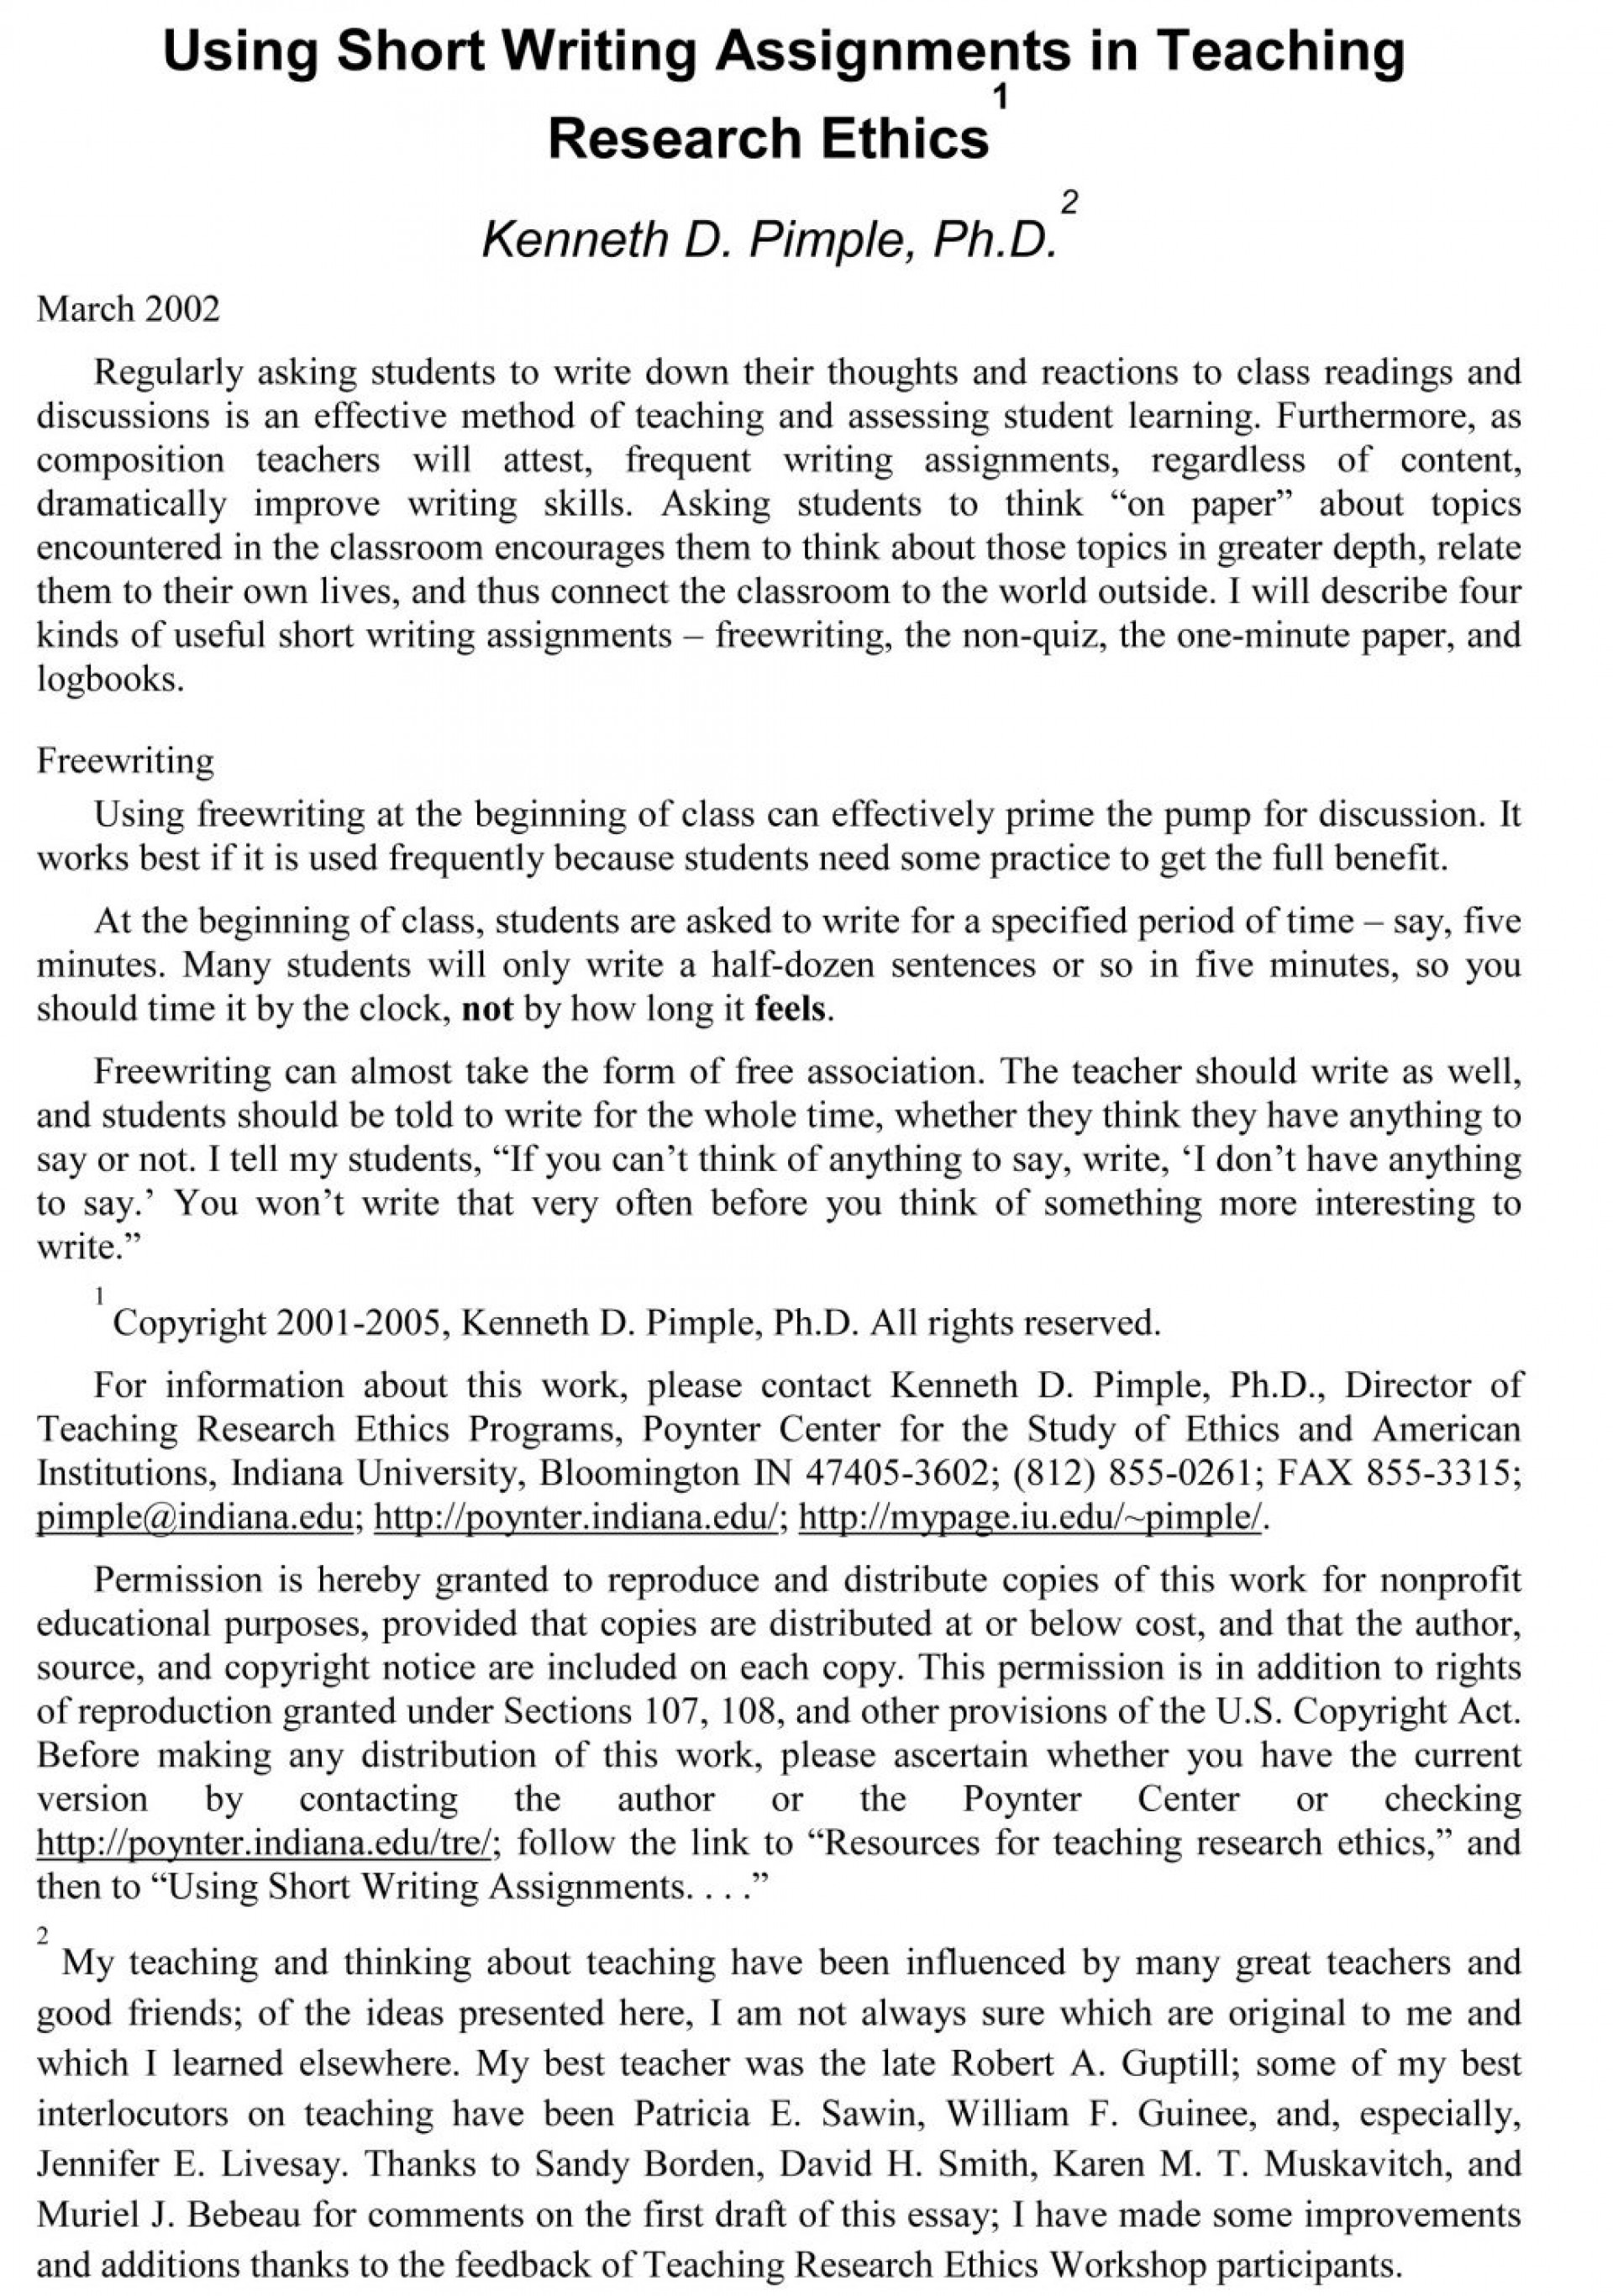 003 Essay Example I Need Help Writing An Write On My Narrative Sample Tea Paper College Admissions Research Stunning Evaluation For Free 1920